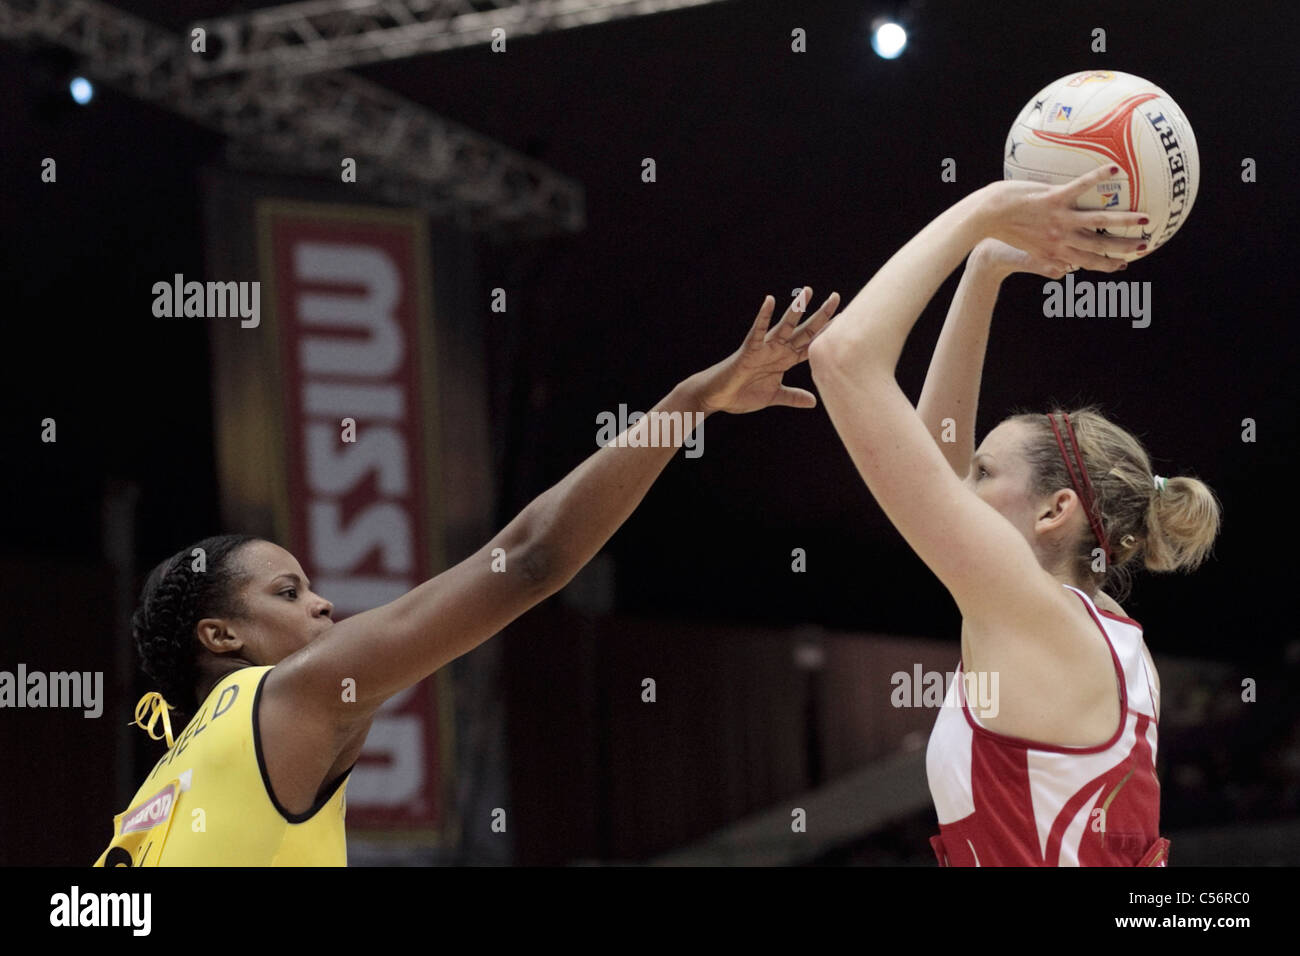 10.07.2011 Althea Byfield of Jamaica(left) goes in for the block on Joanne Harten during the 3rd place playoffs - Stock Image